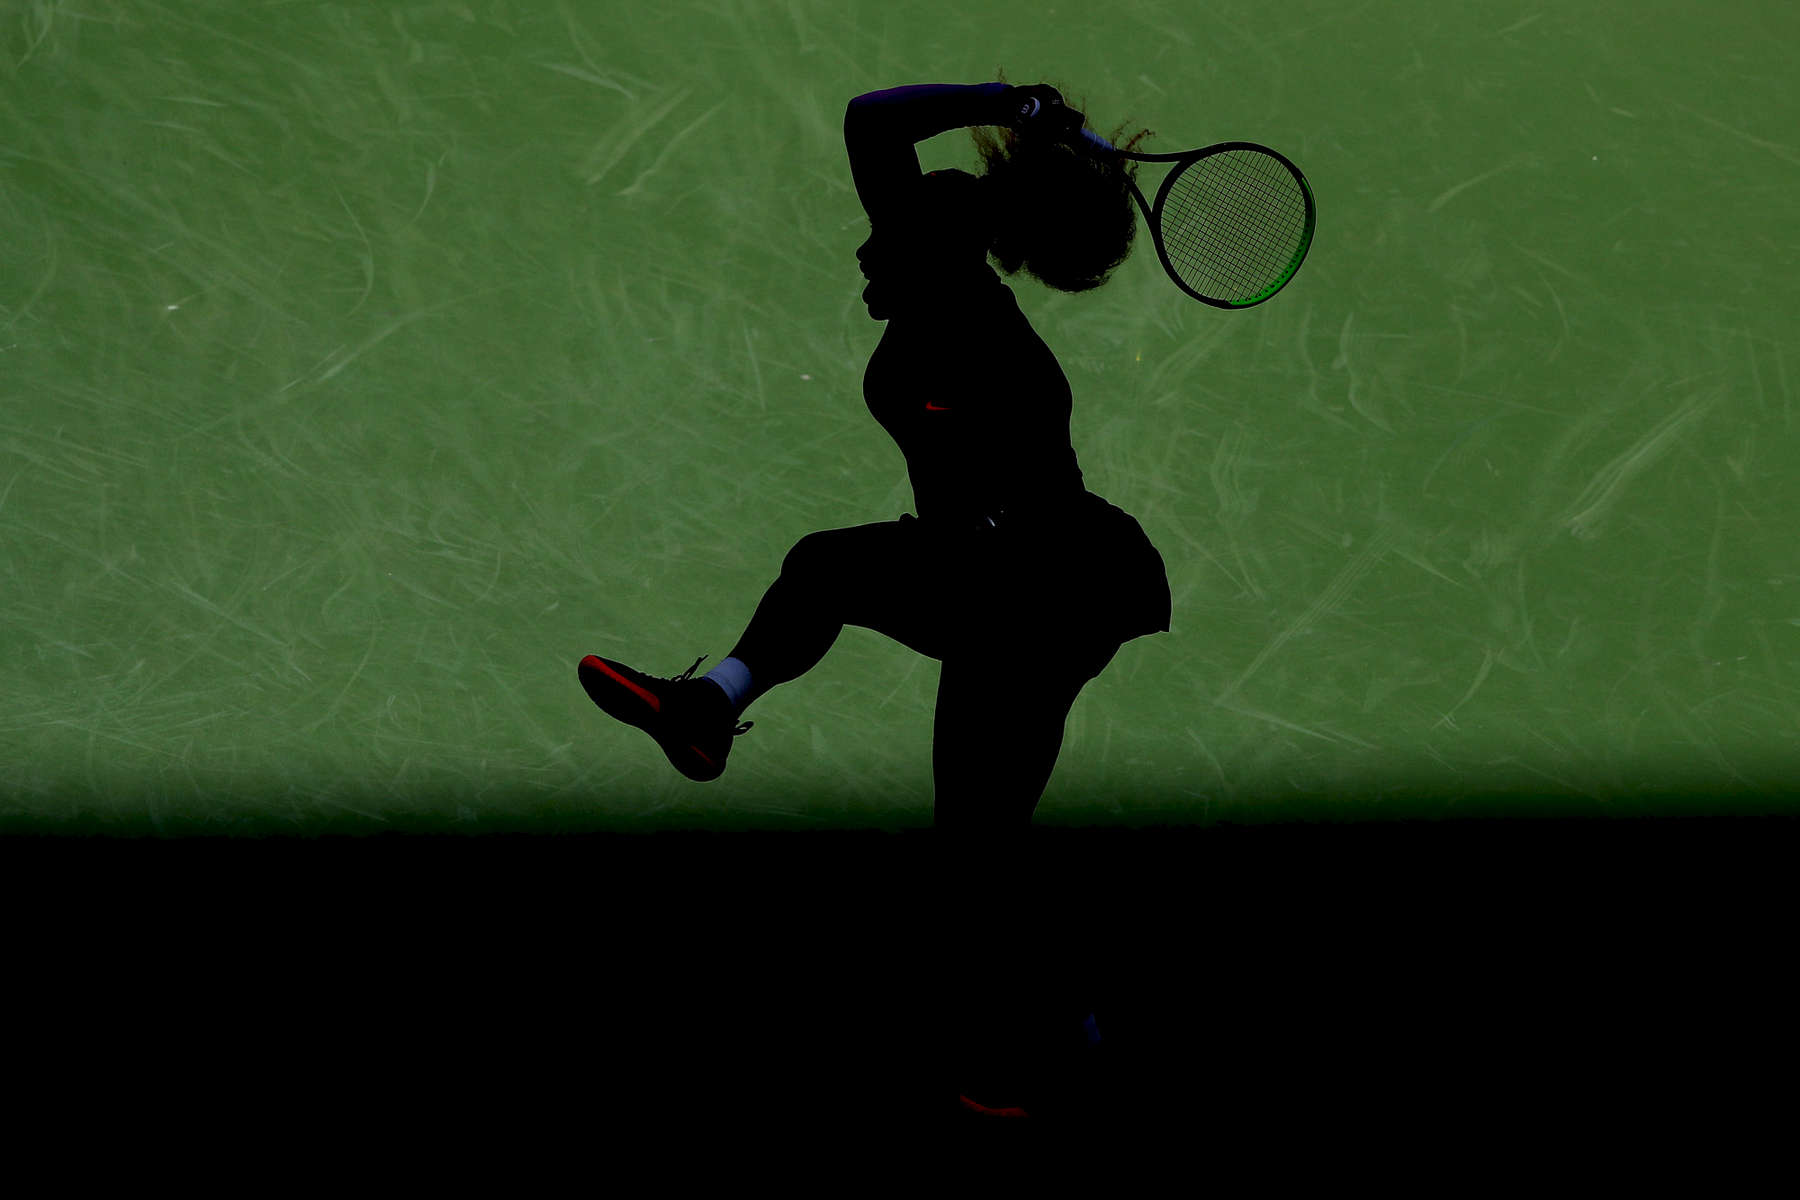 Serena Williams of the United States returns a shot during of her Women's Singles round three match against Karolina Muchova of the Czech Republic on day five of the 2019 US Open at the USTA Billie Jean King National Tennis Center on August 30, 2019 in Queens borough of New York City.